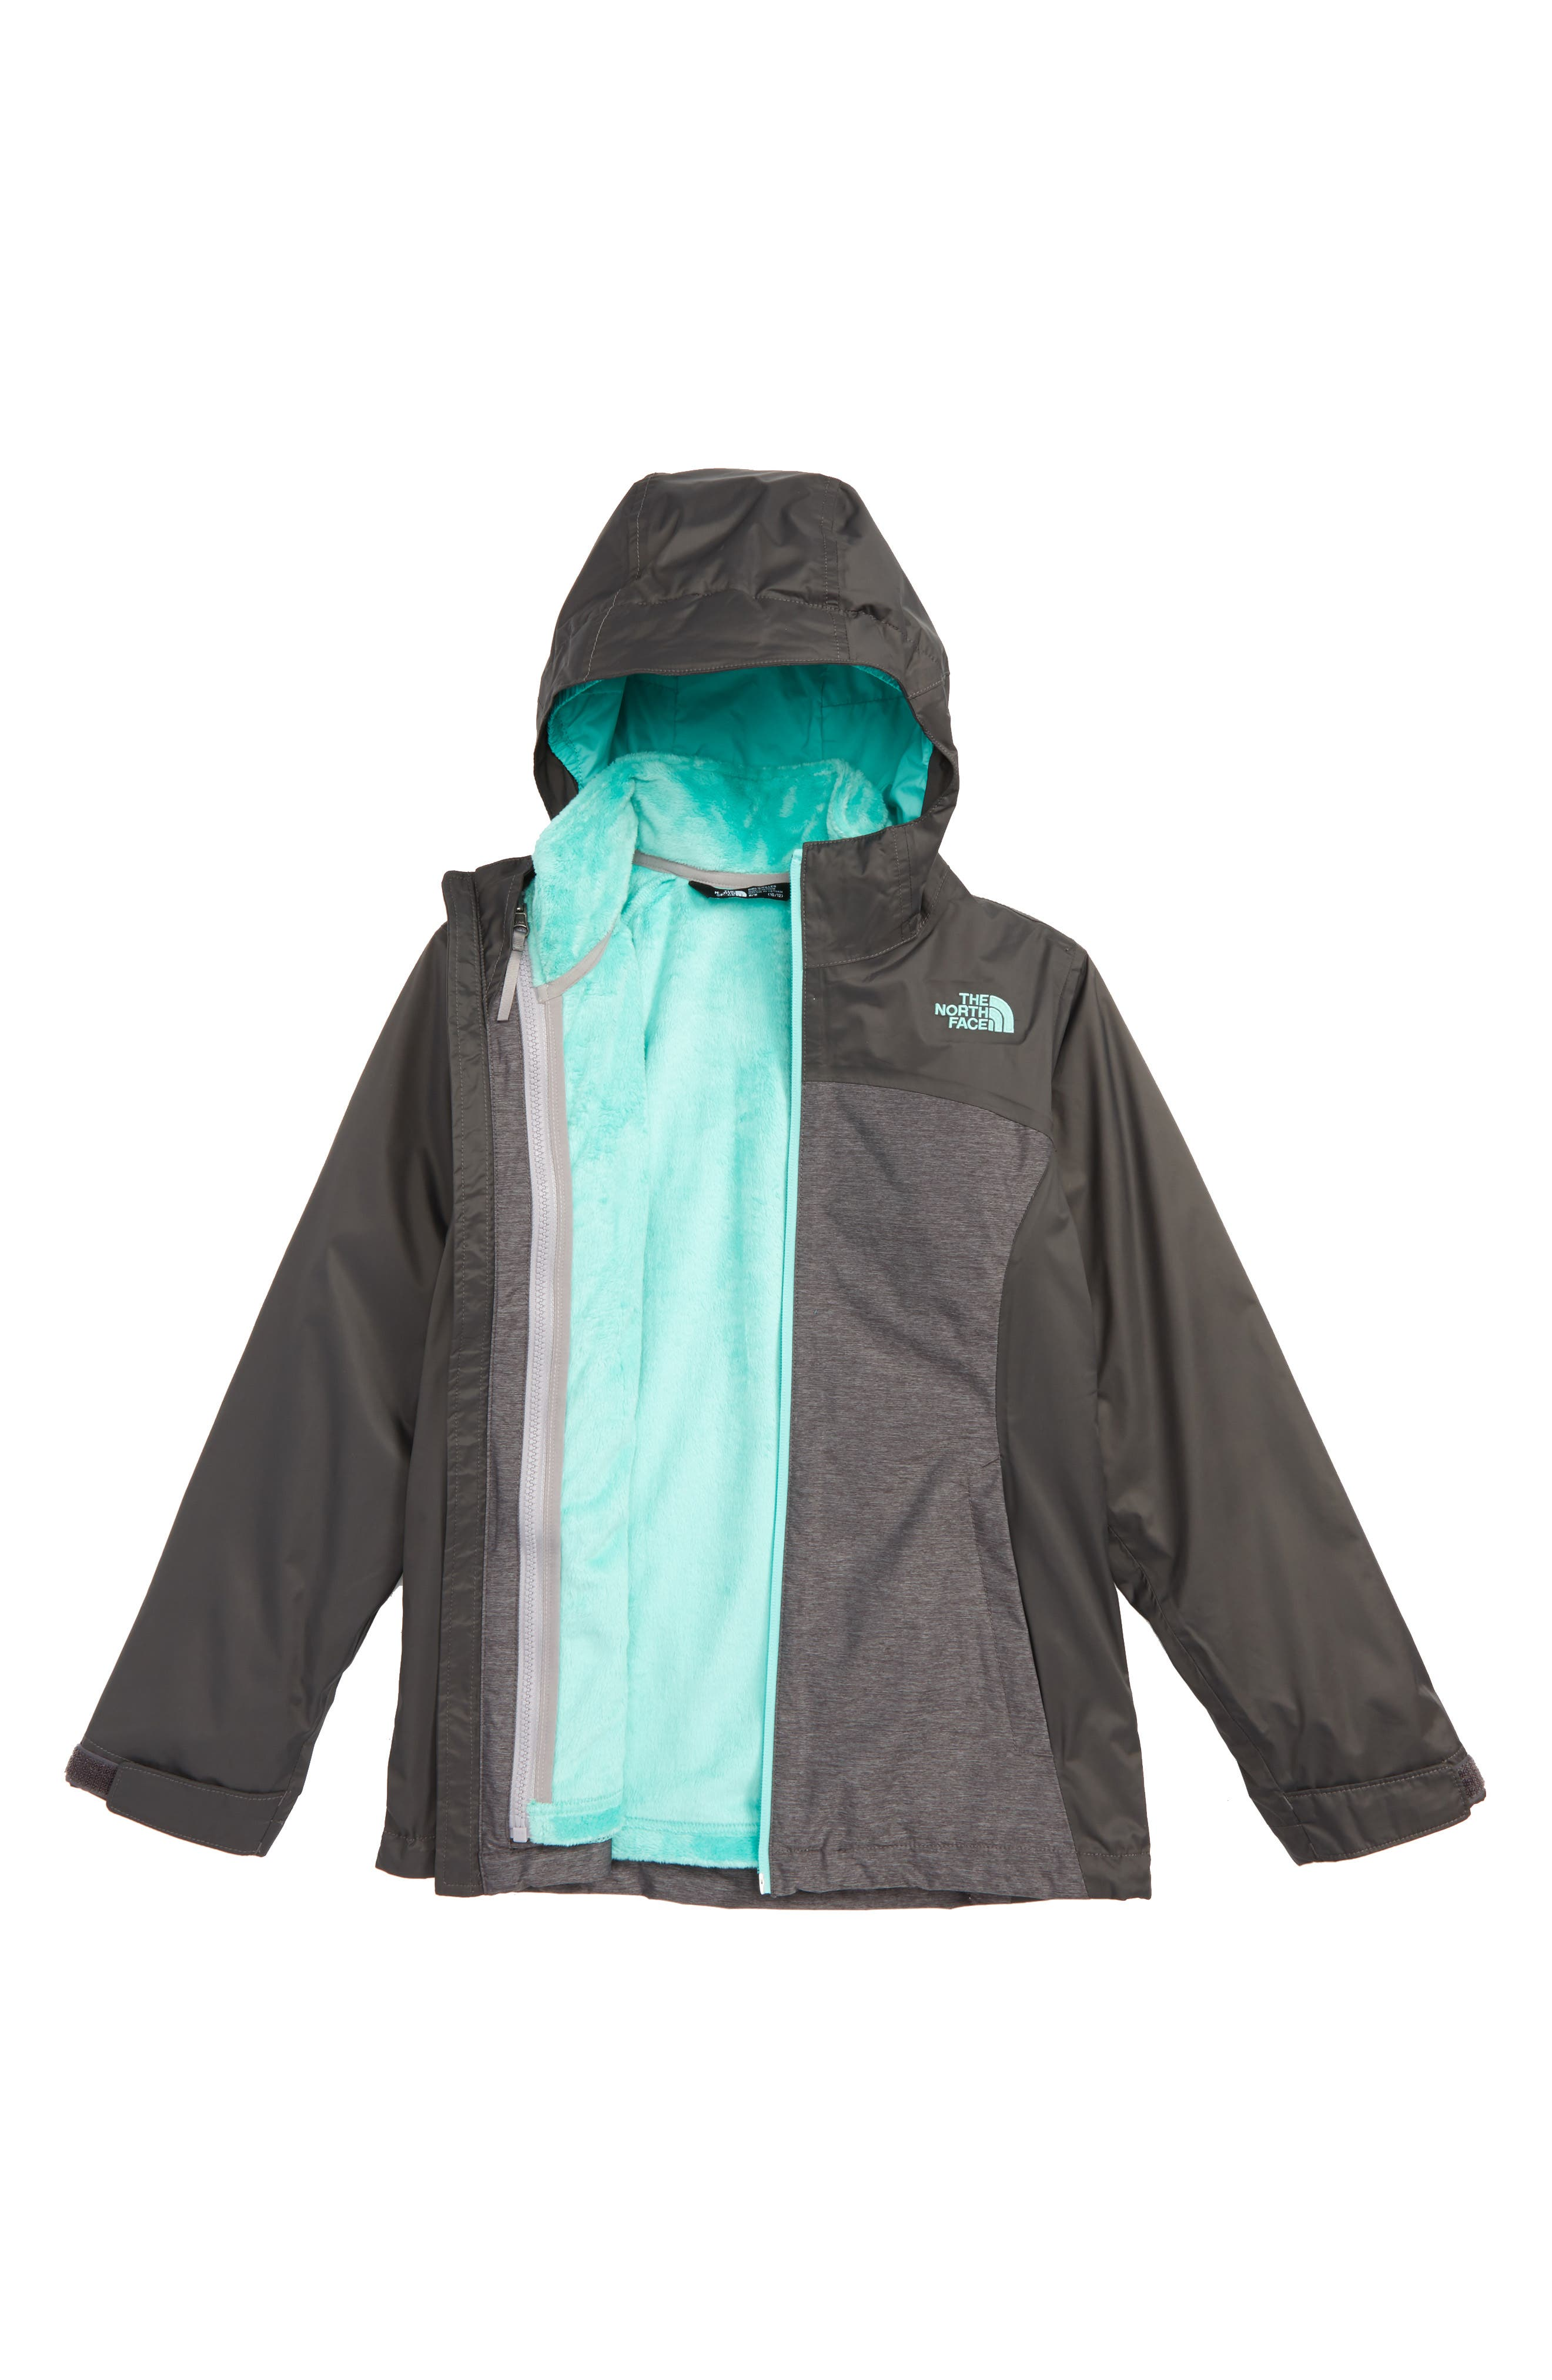 Osolita TriClimate<sup>®</sup> Waterproof 3-in-1 Jacket,                         Main,                         color, Graphite Grey